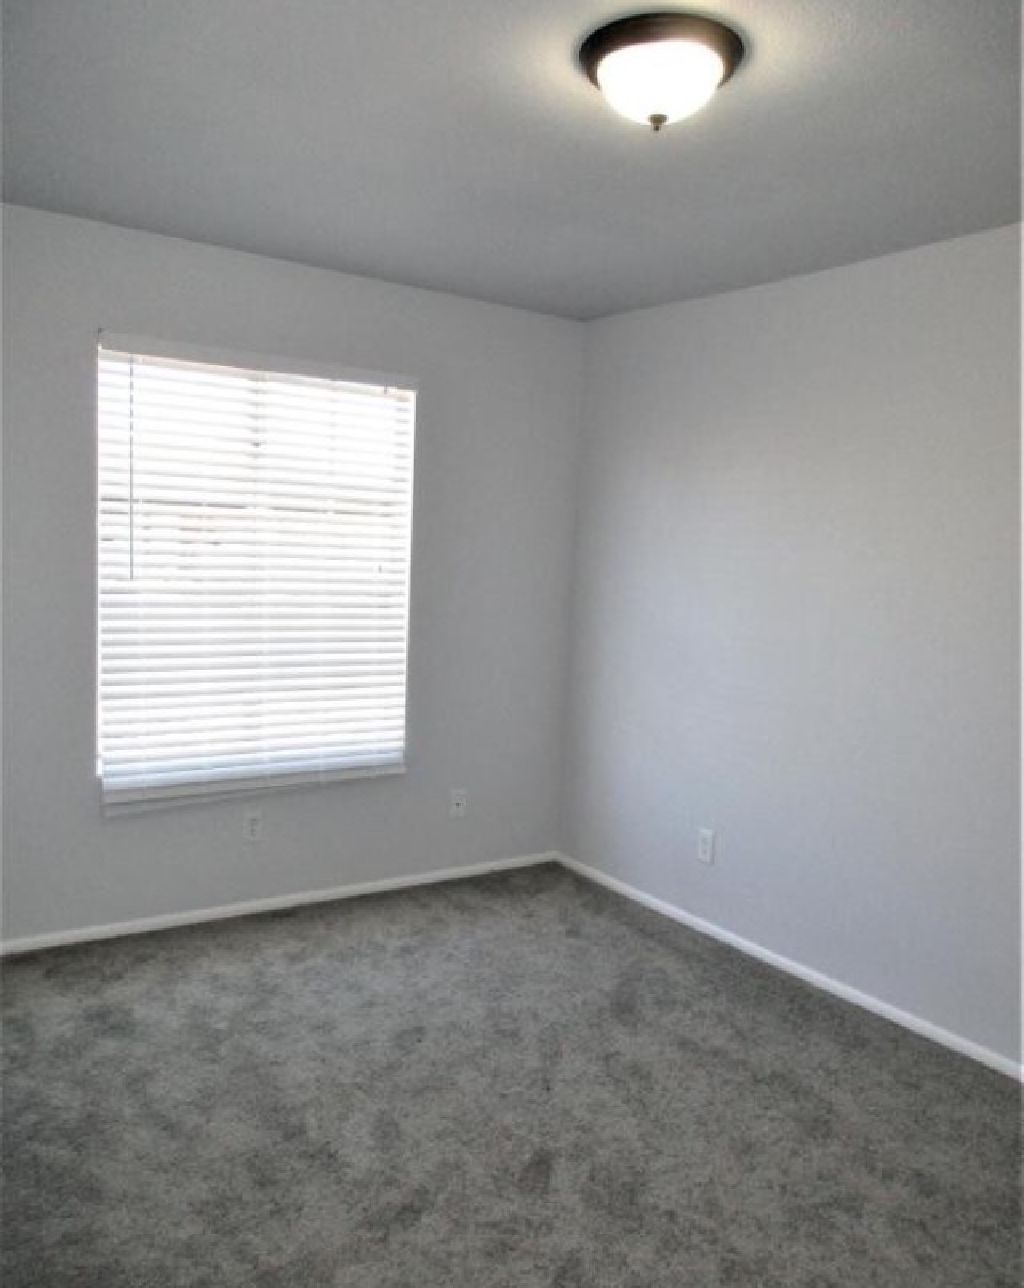 Room in Newly Remodeled Home in Quiet Mesa Neighborhood